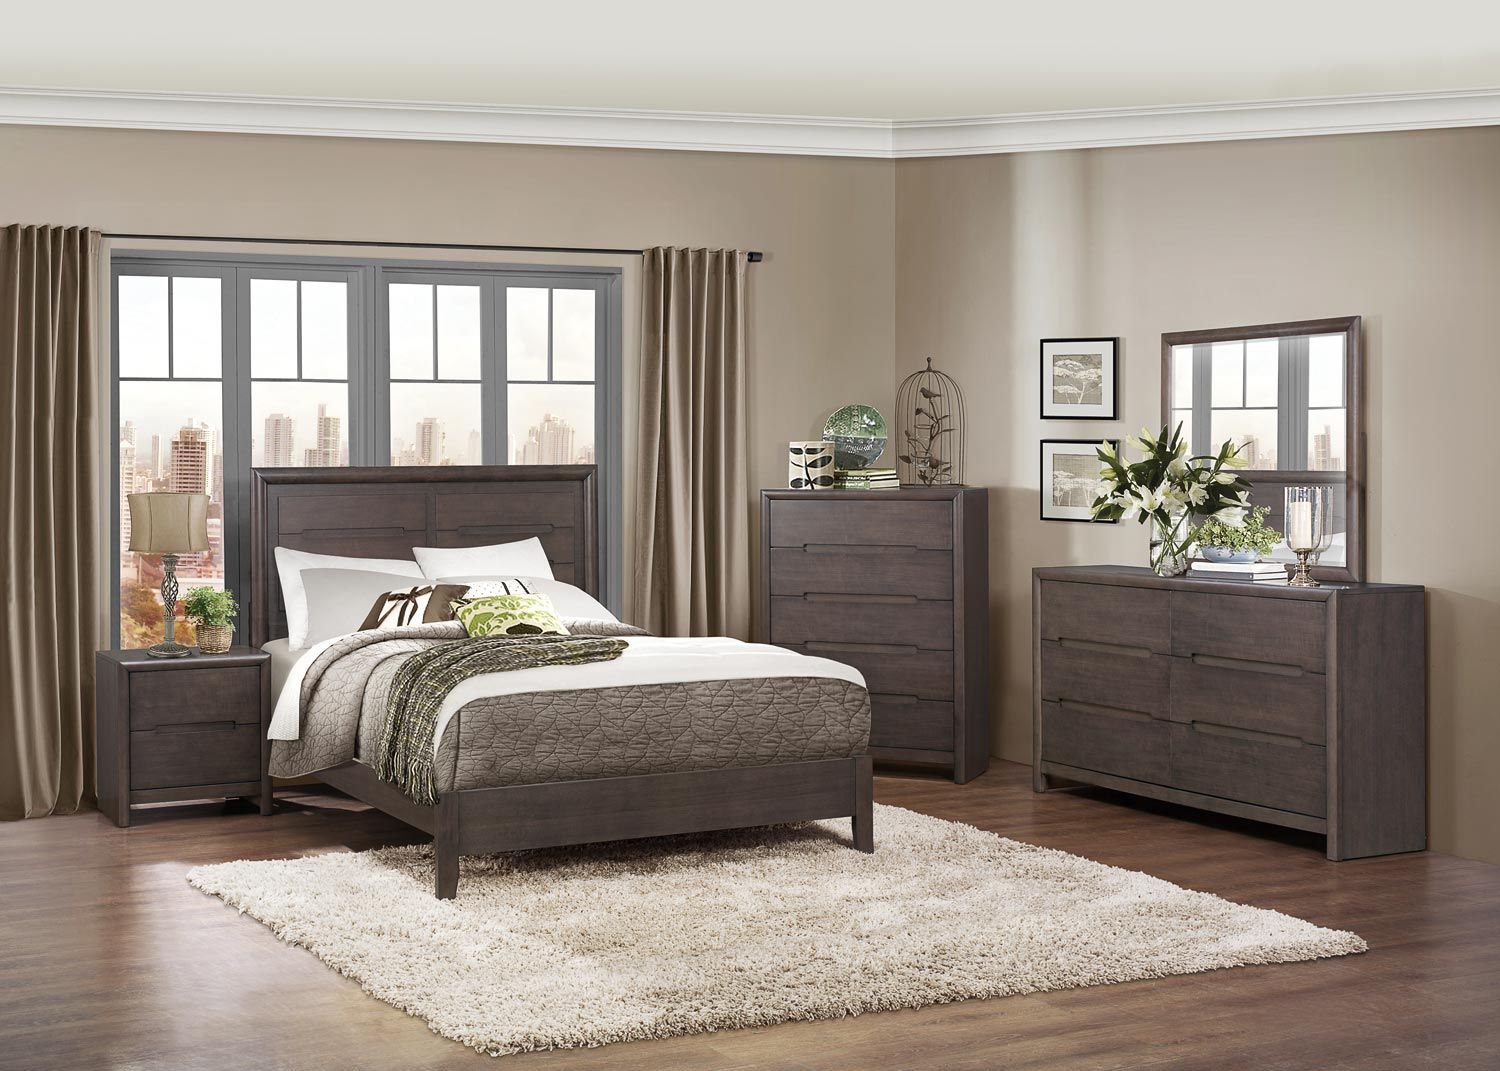 Good Bedroom Furniture Sets Dallas Tx Design Ideas